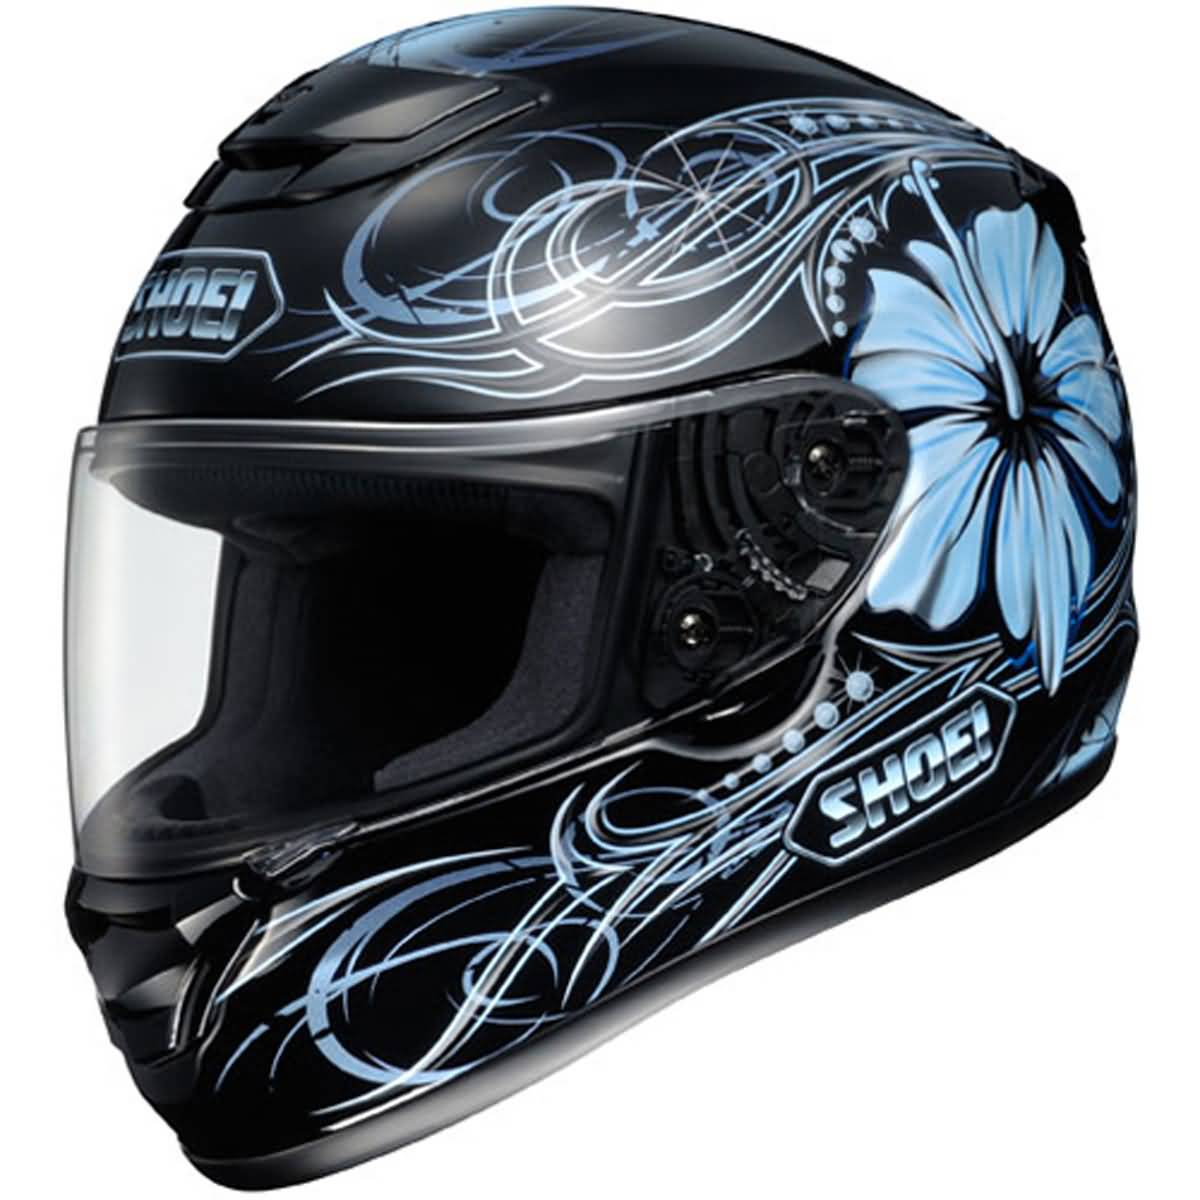 Shoei Qwest Goddess Adult Street Helmets-0115